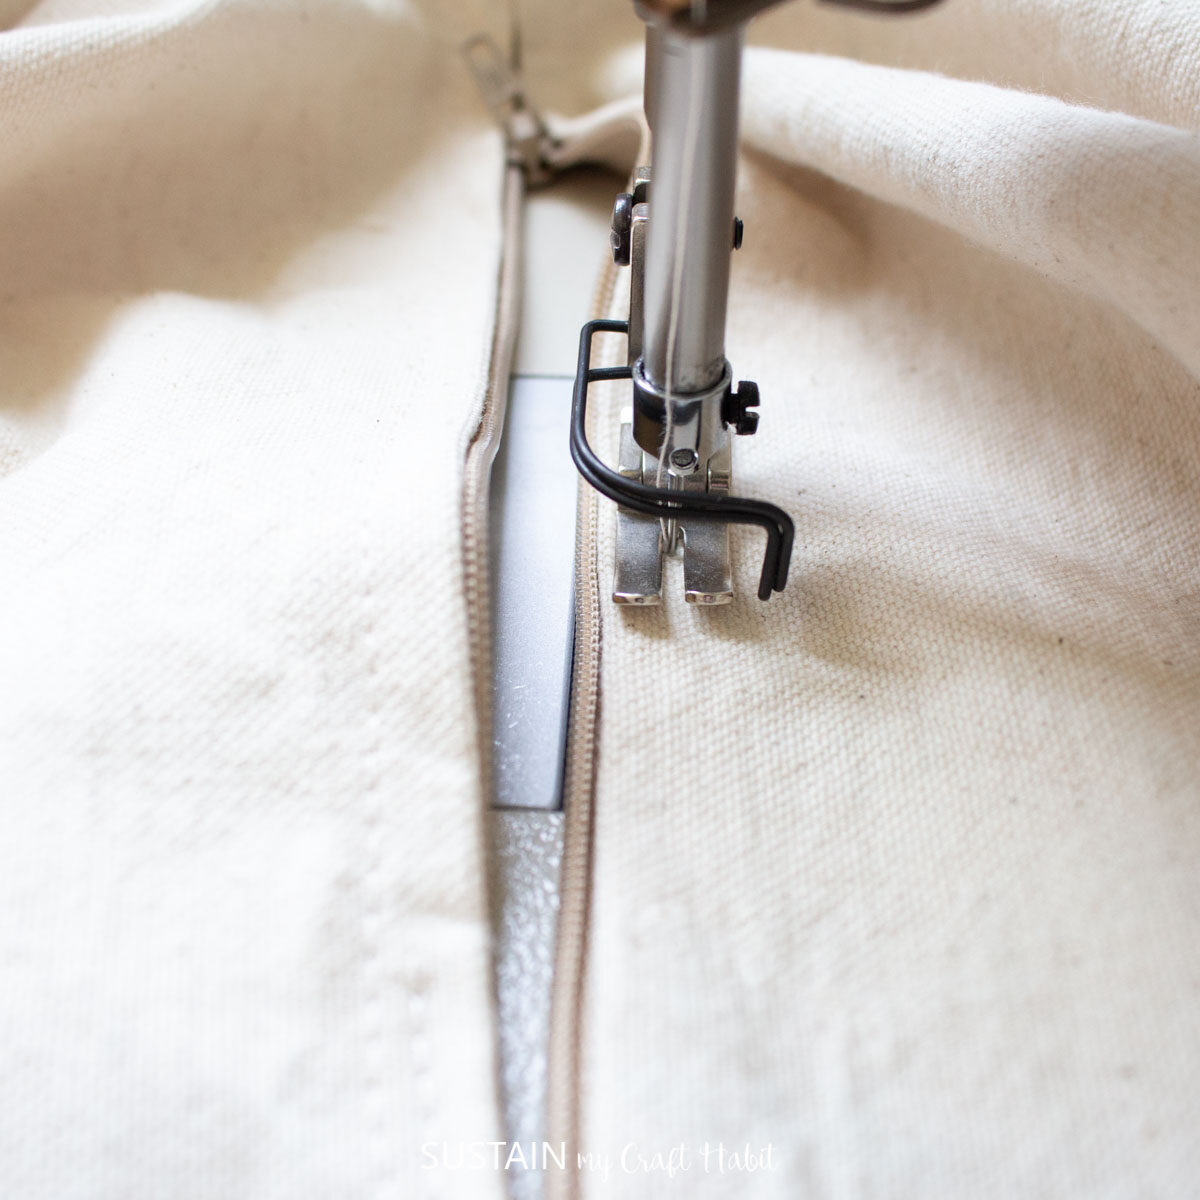 Sewing the zipper through all layers for the fabric canvas.